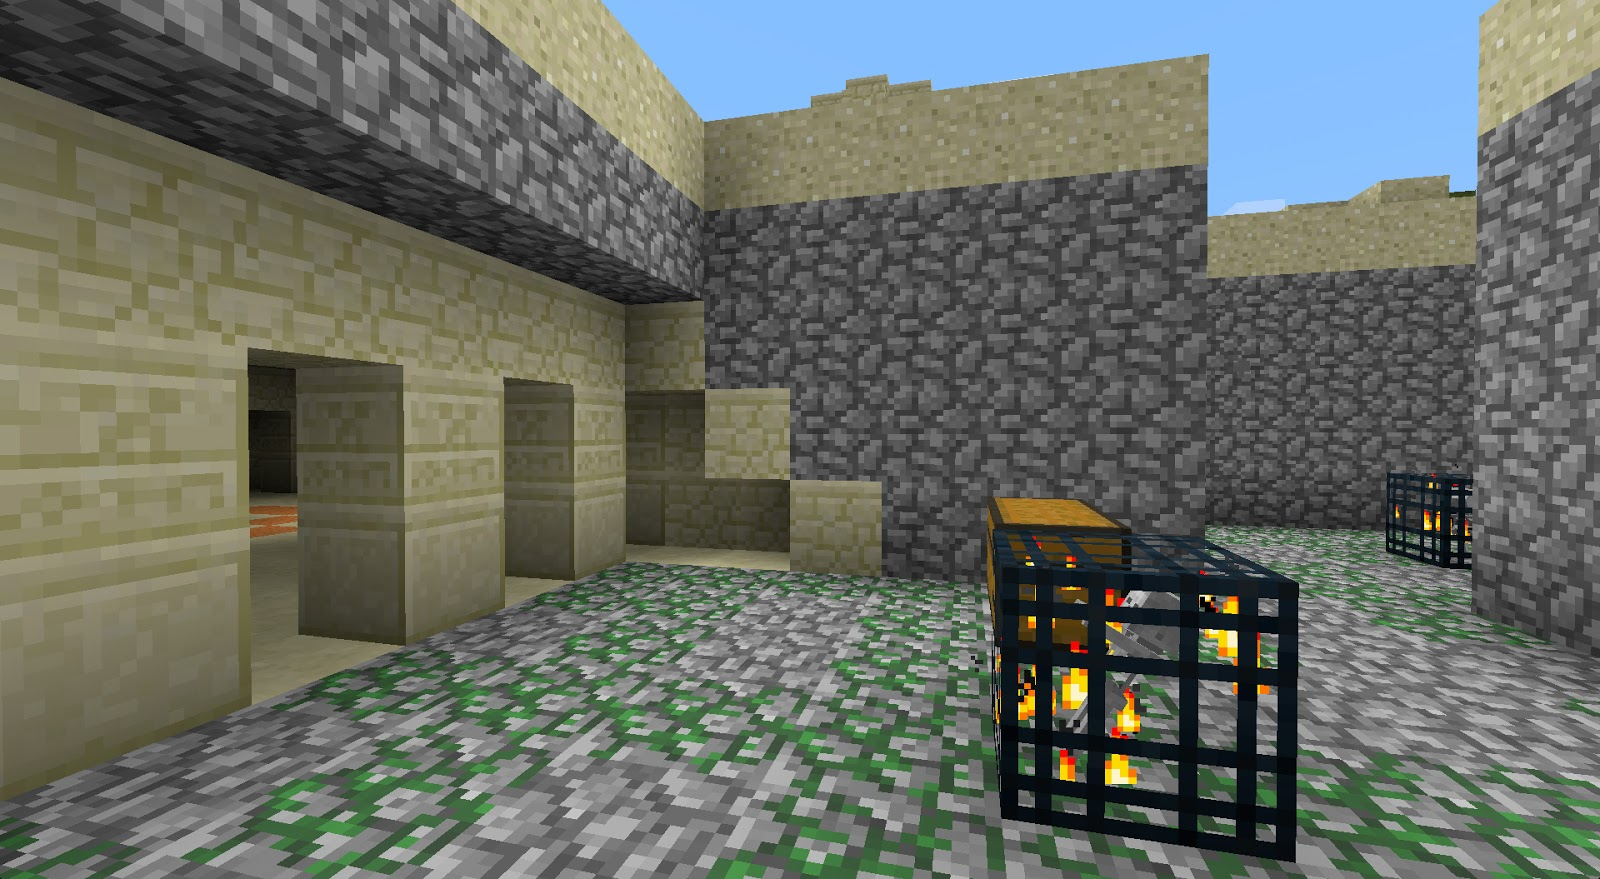 Cool surface dungeon seed - Seeds - Minecraft: Java Edition